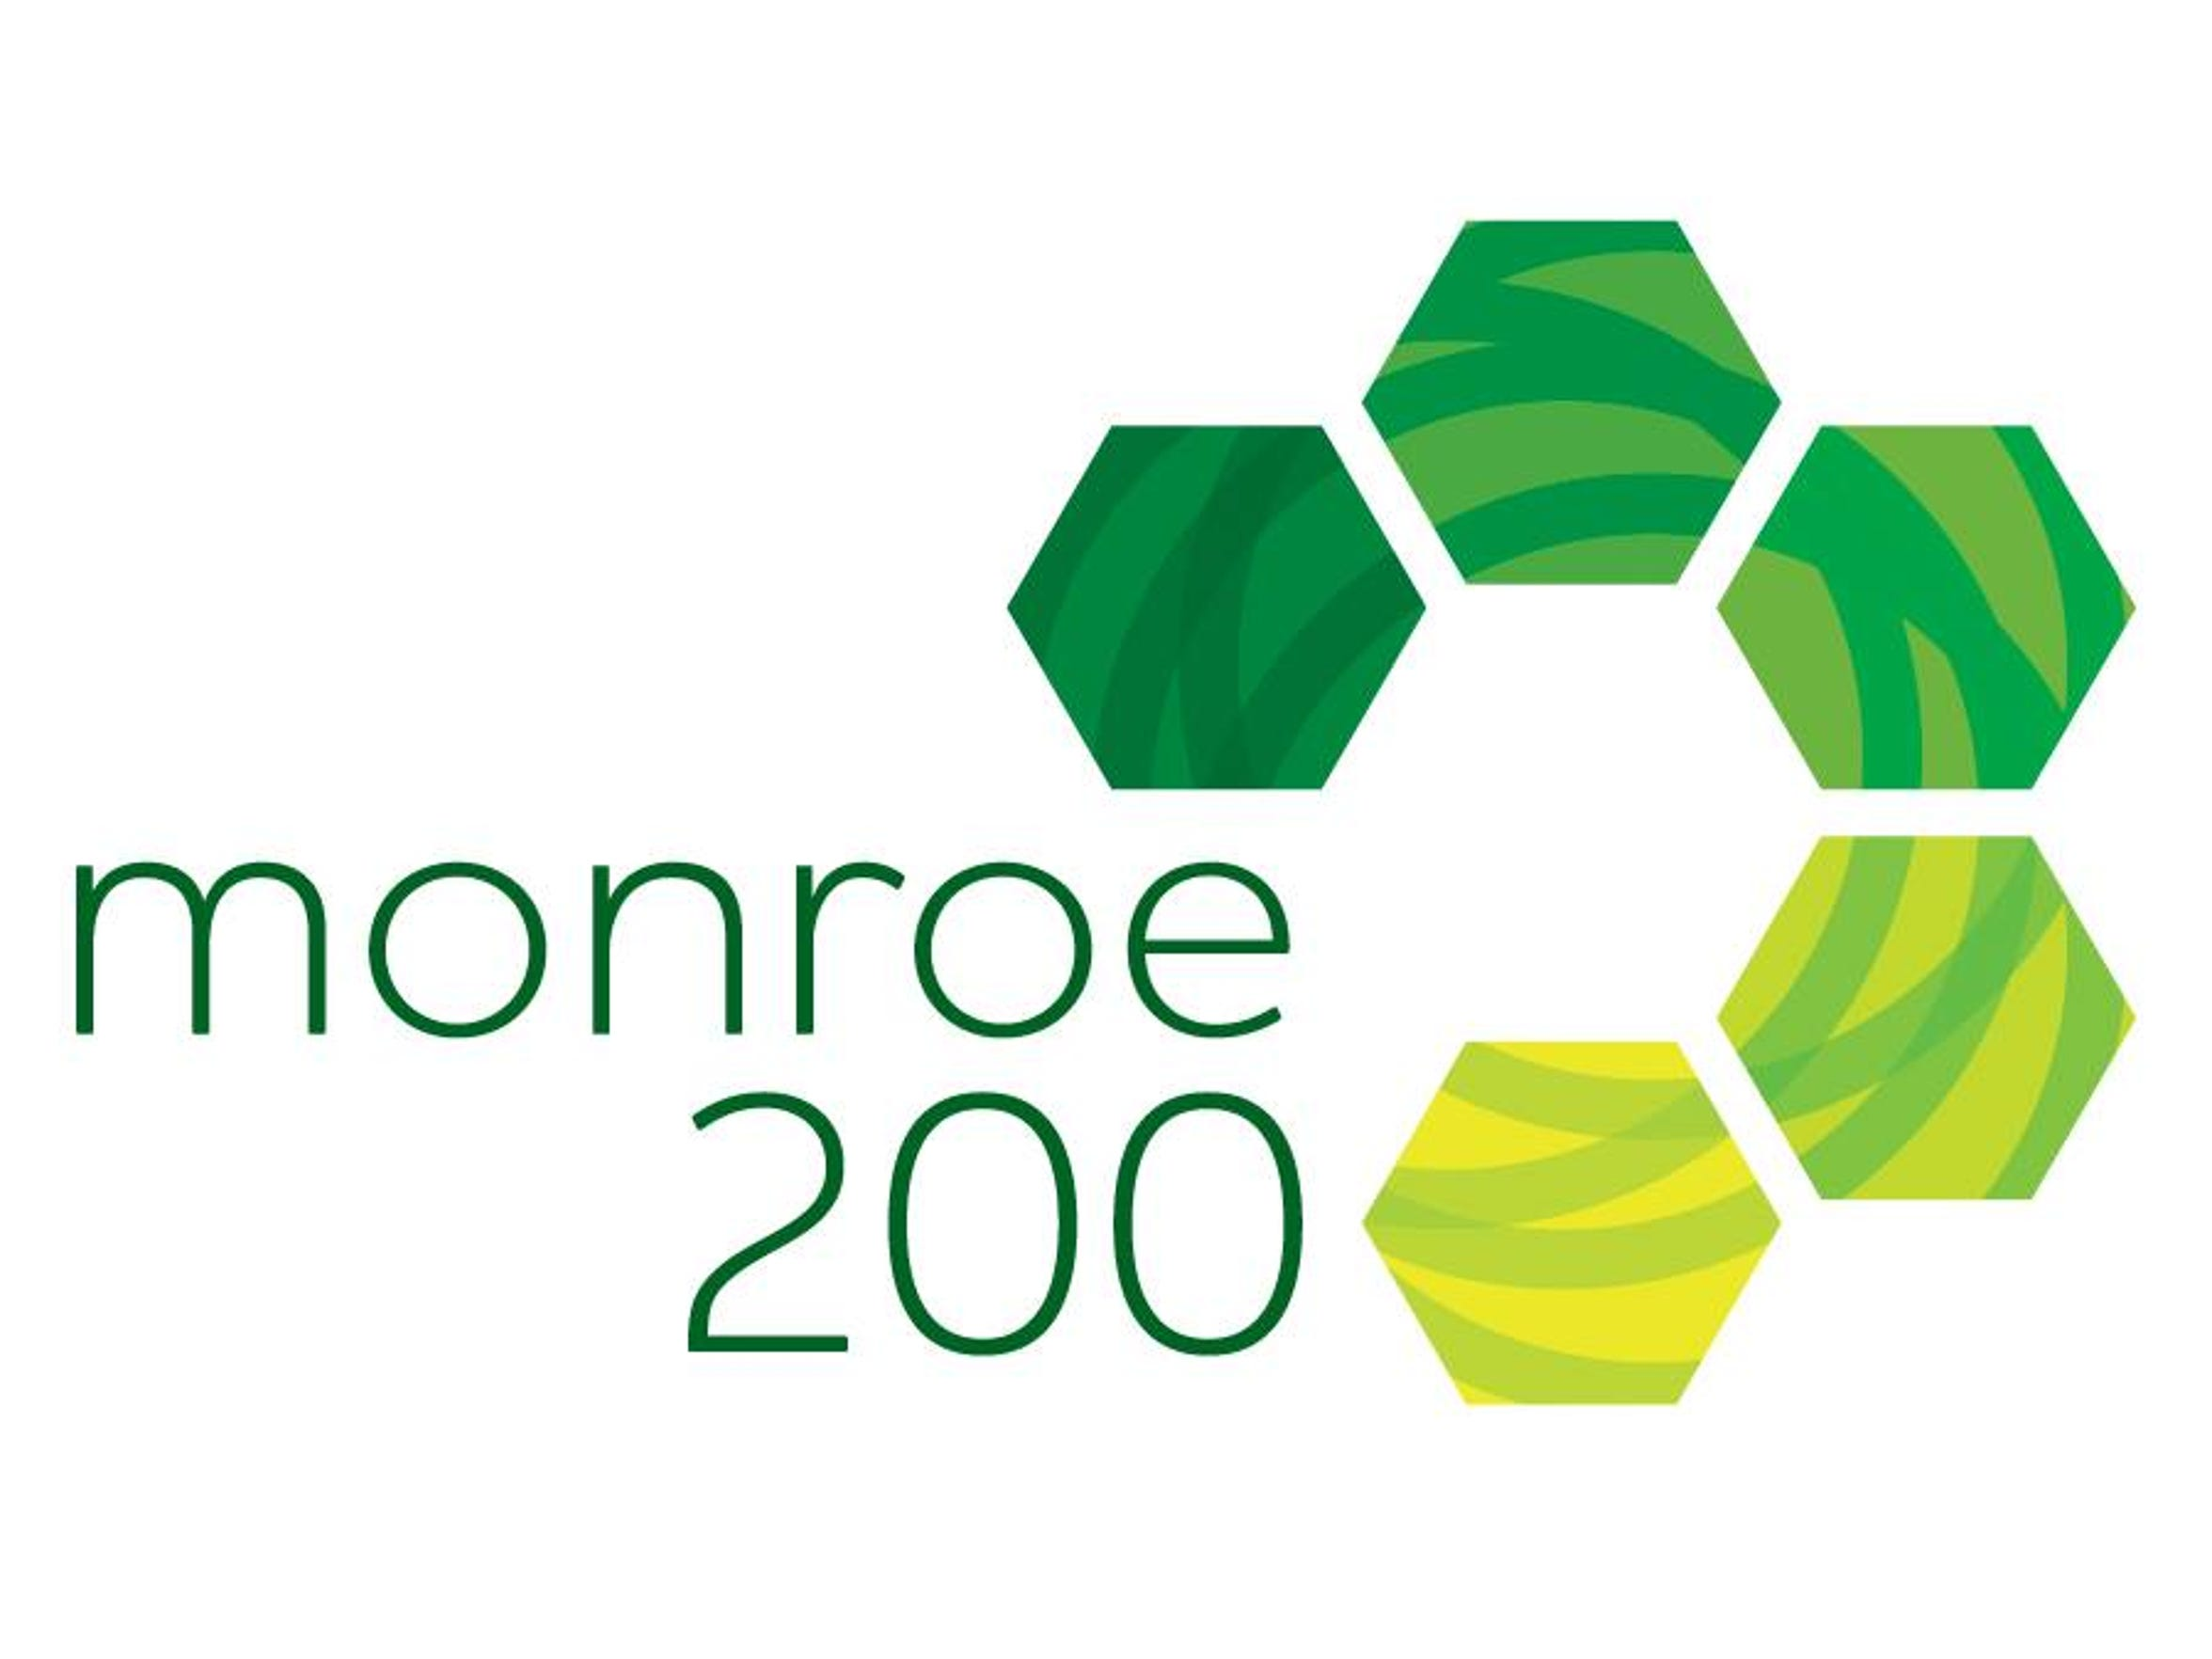 The logo for Monroe County's Monroe200 initiative to